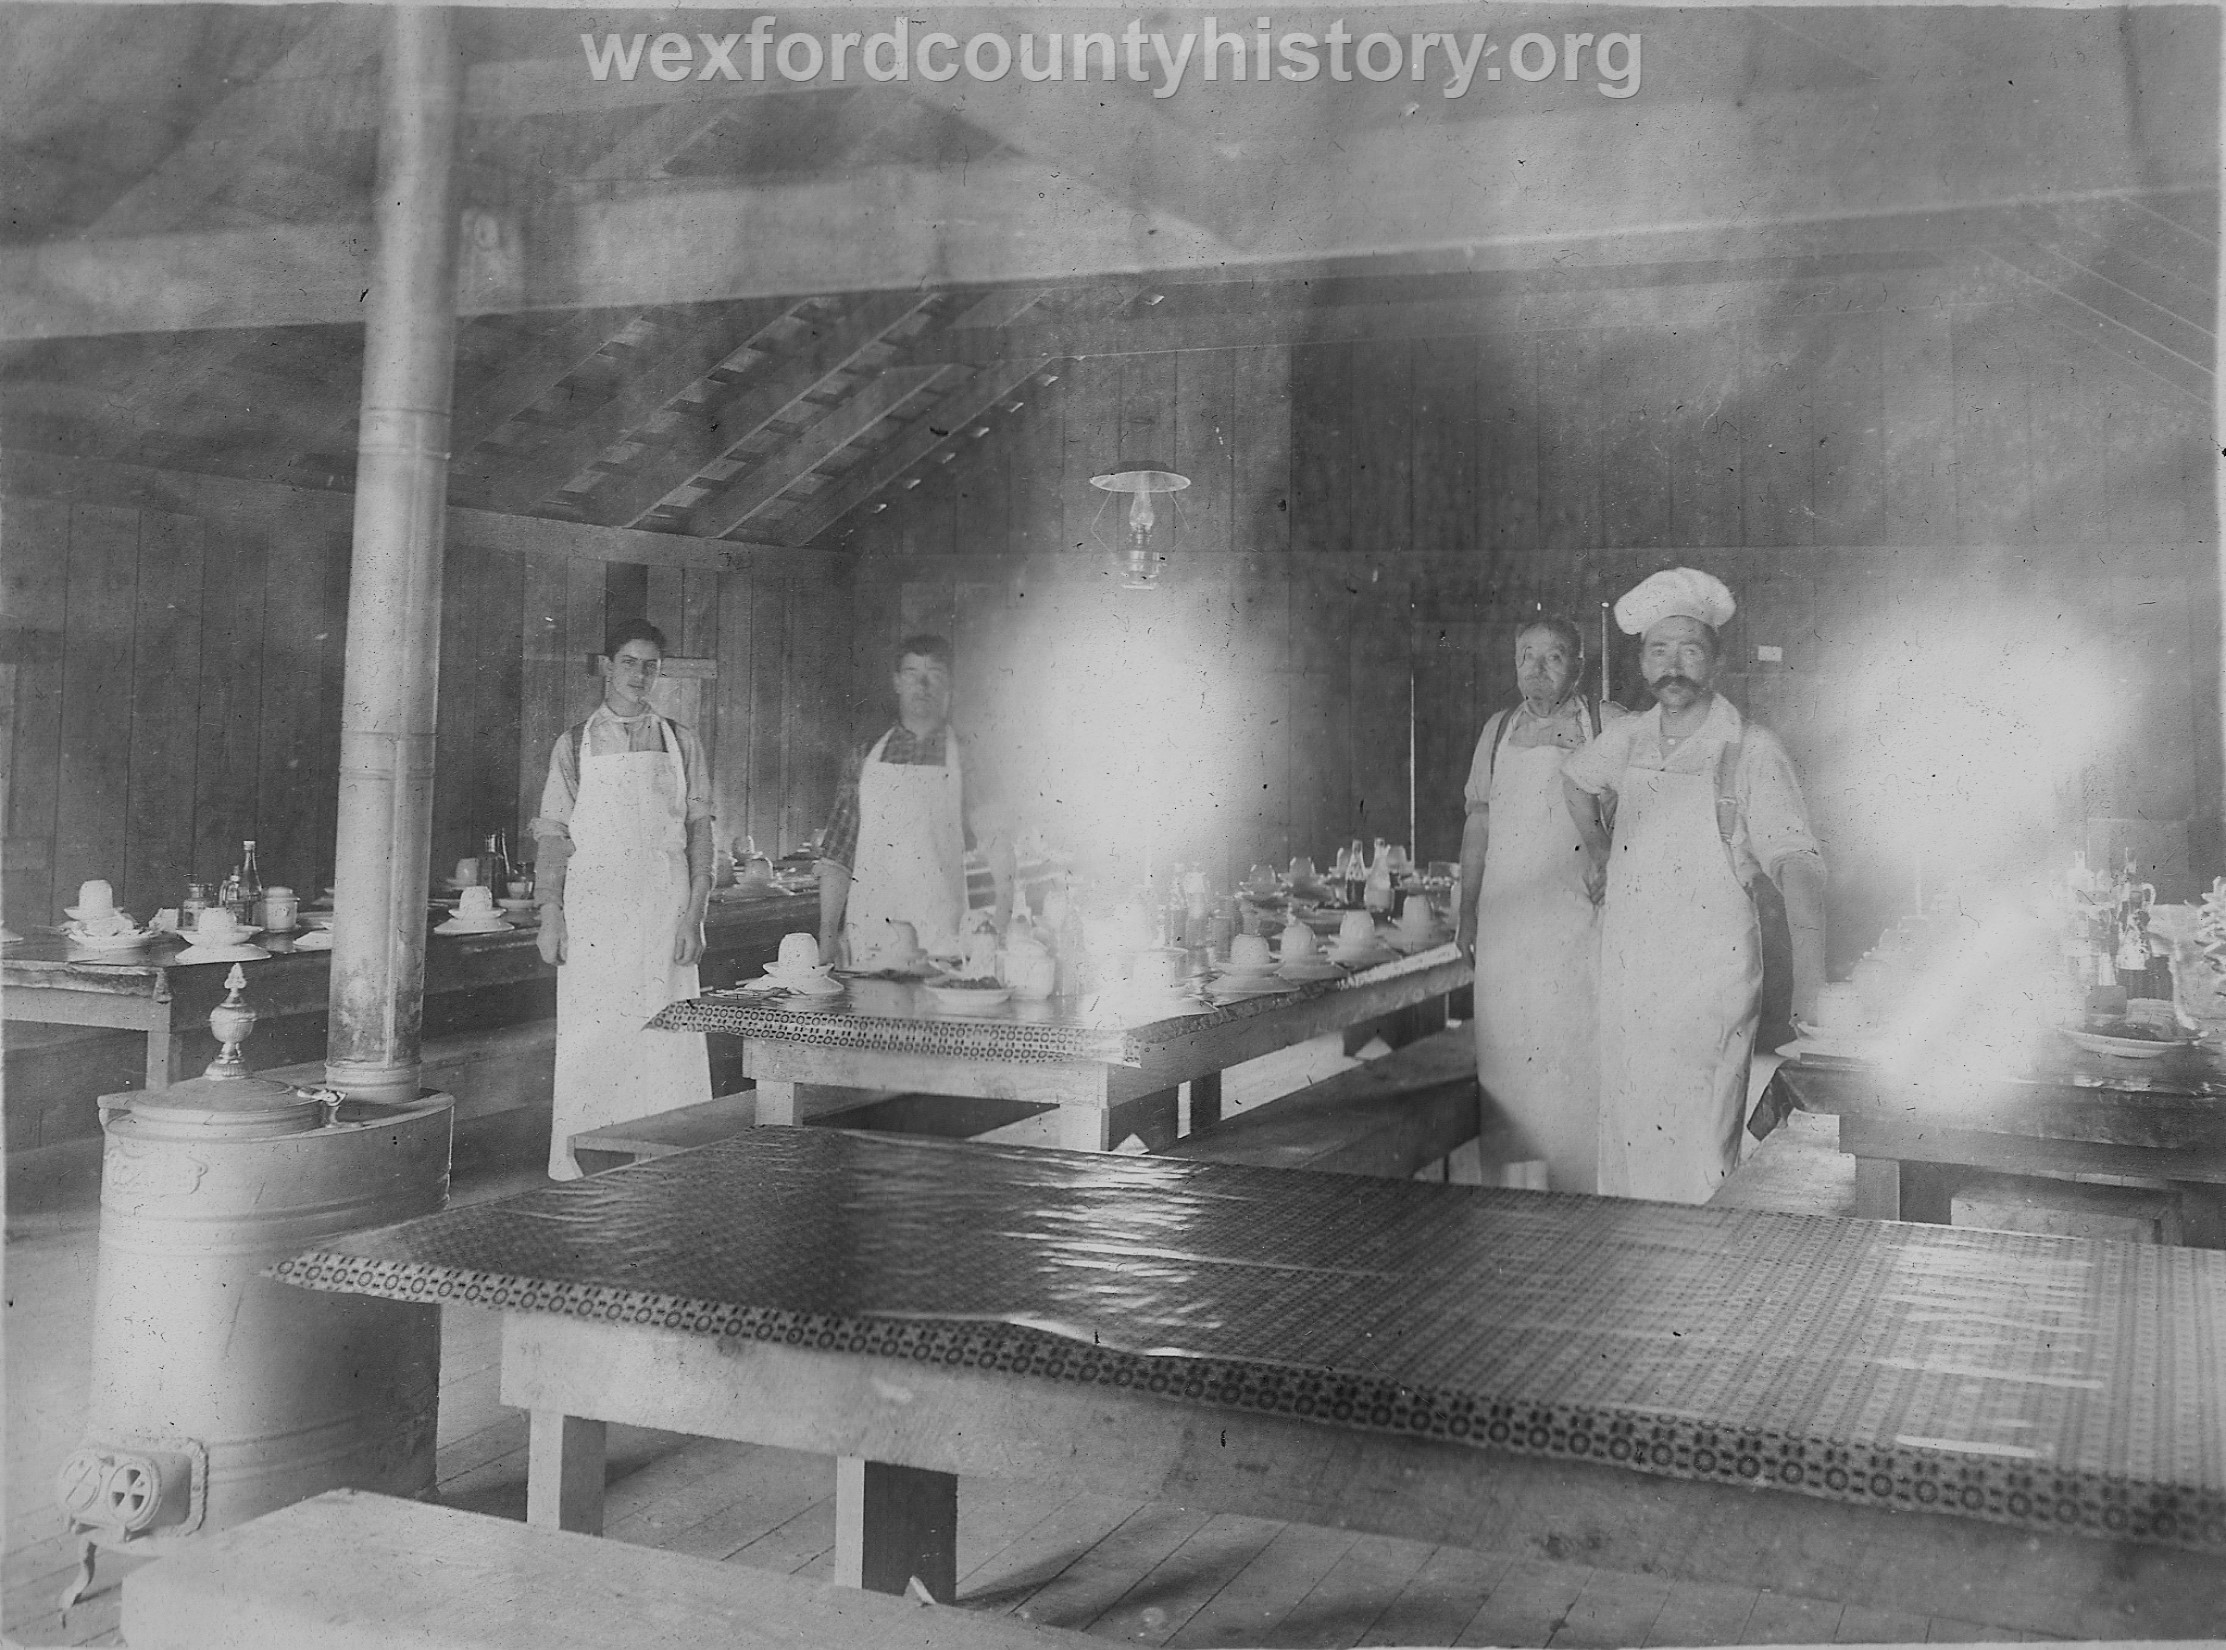 Wexford-County-Lumber-Timber-Harvest-Circa-1890s-18